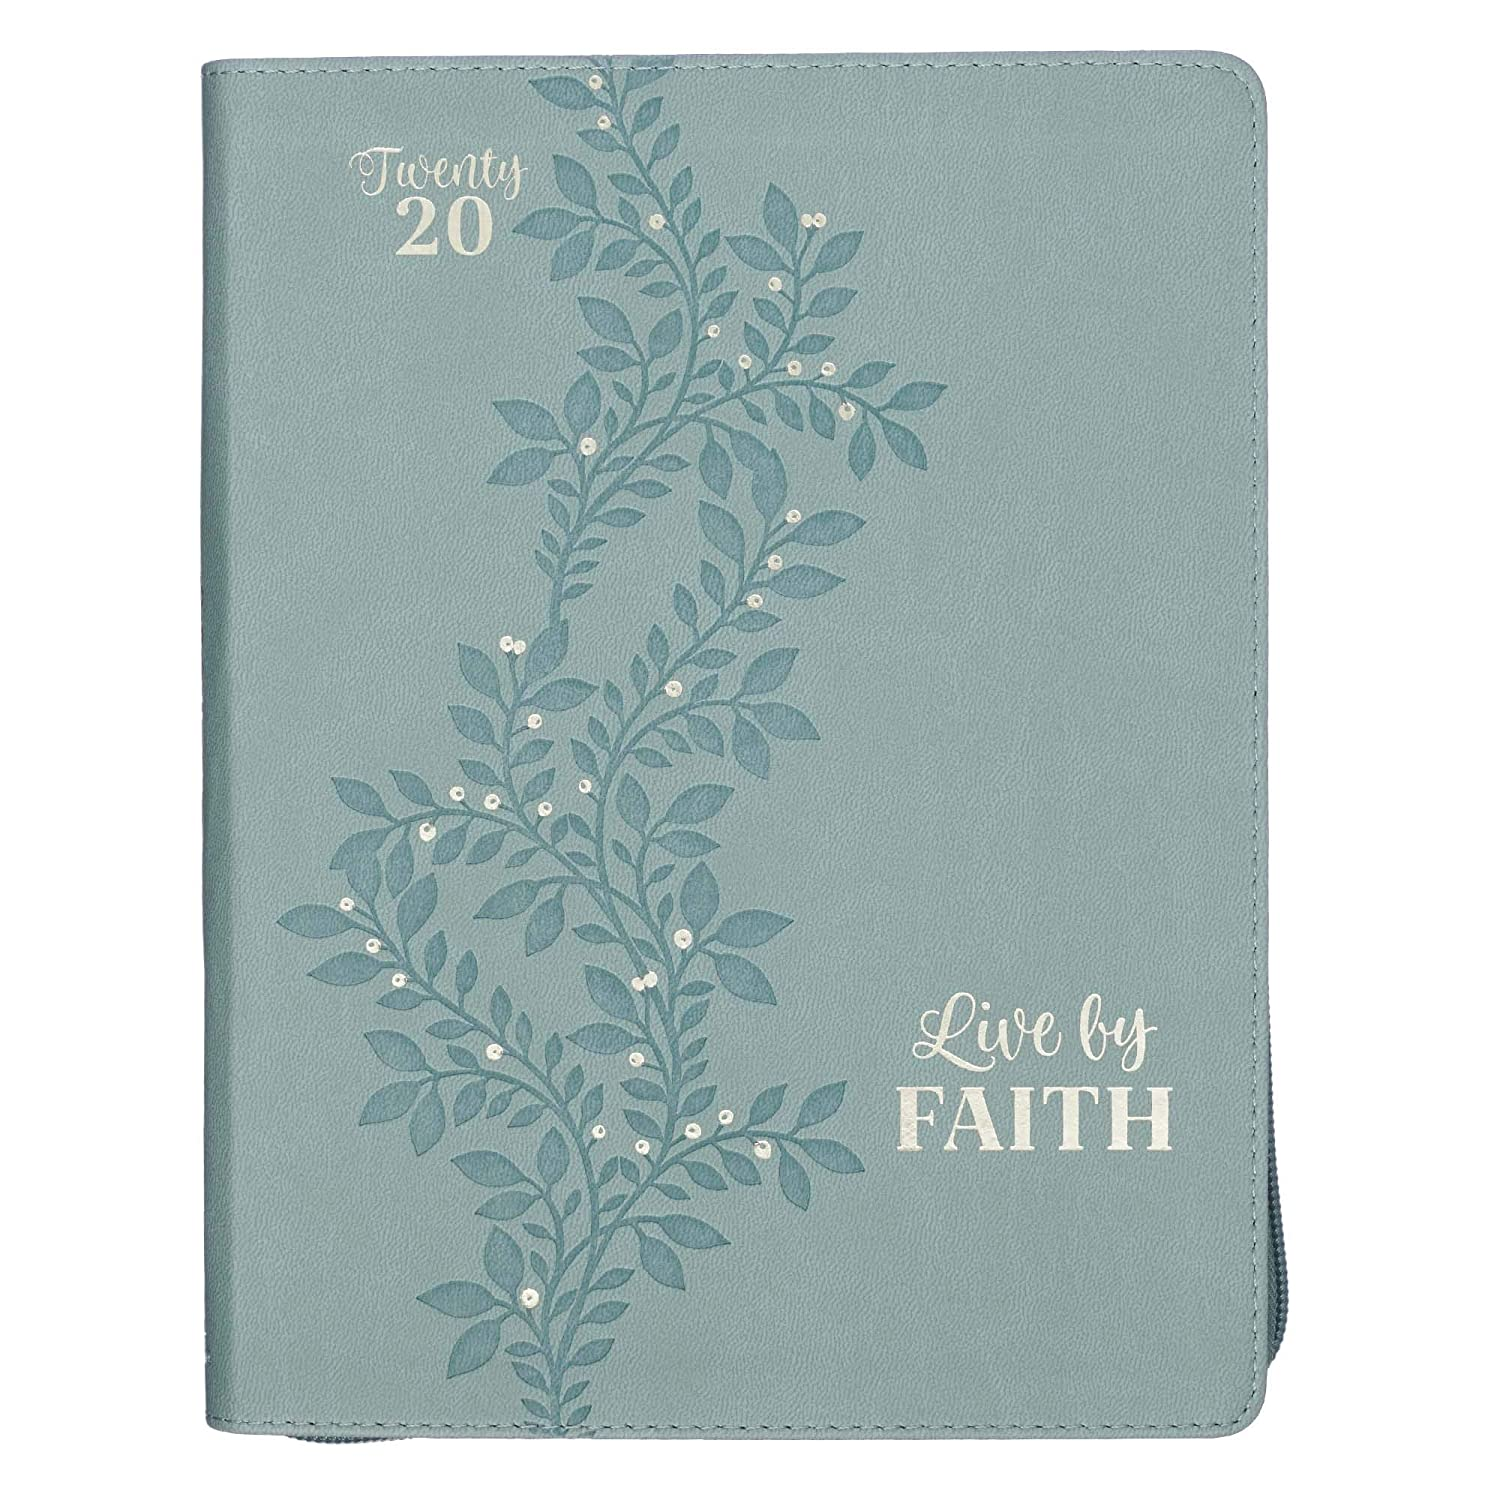 Live by Faith, Seafoam Green Large Faux Leather Zippered Daily Planner for 2020